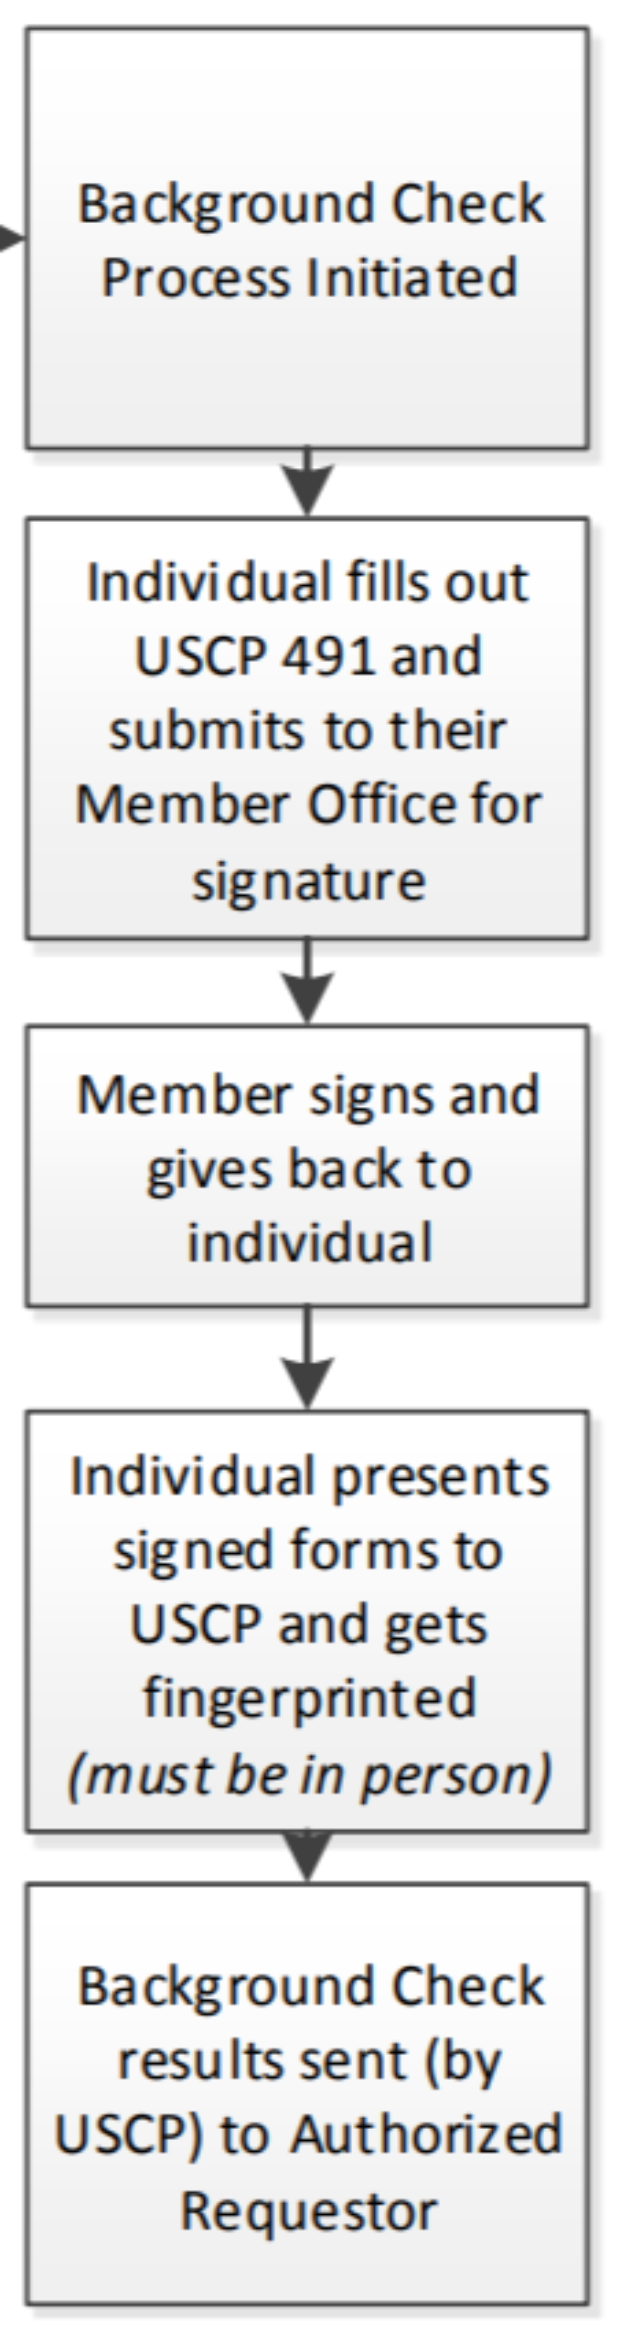 Background check diagram from House Policy 16